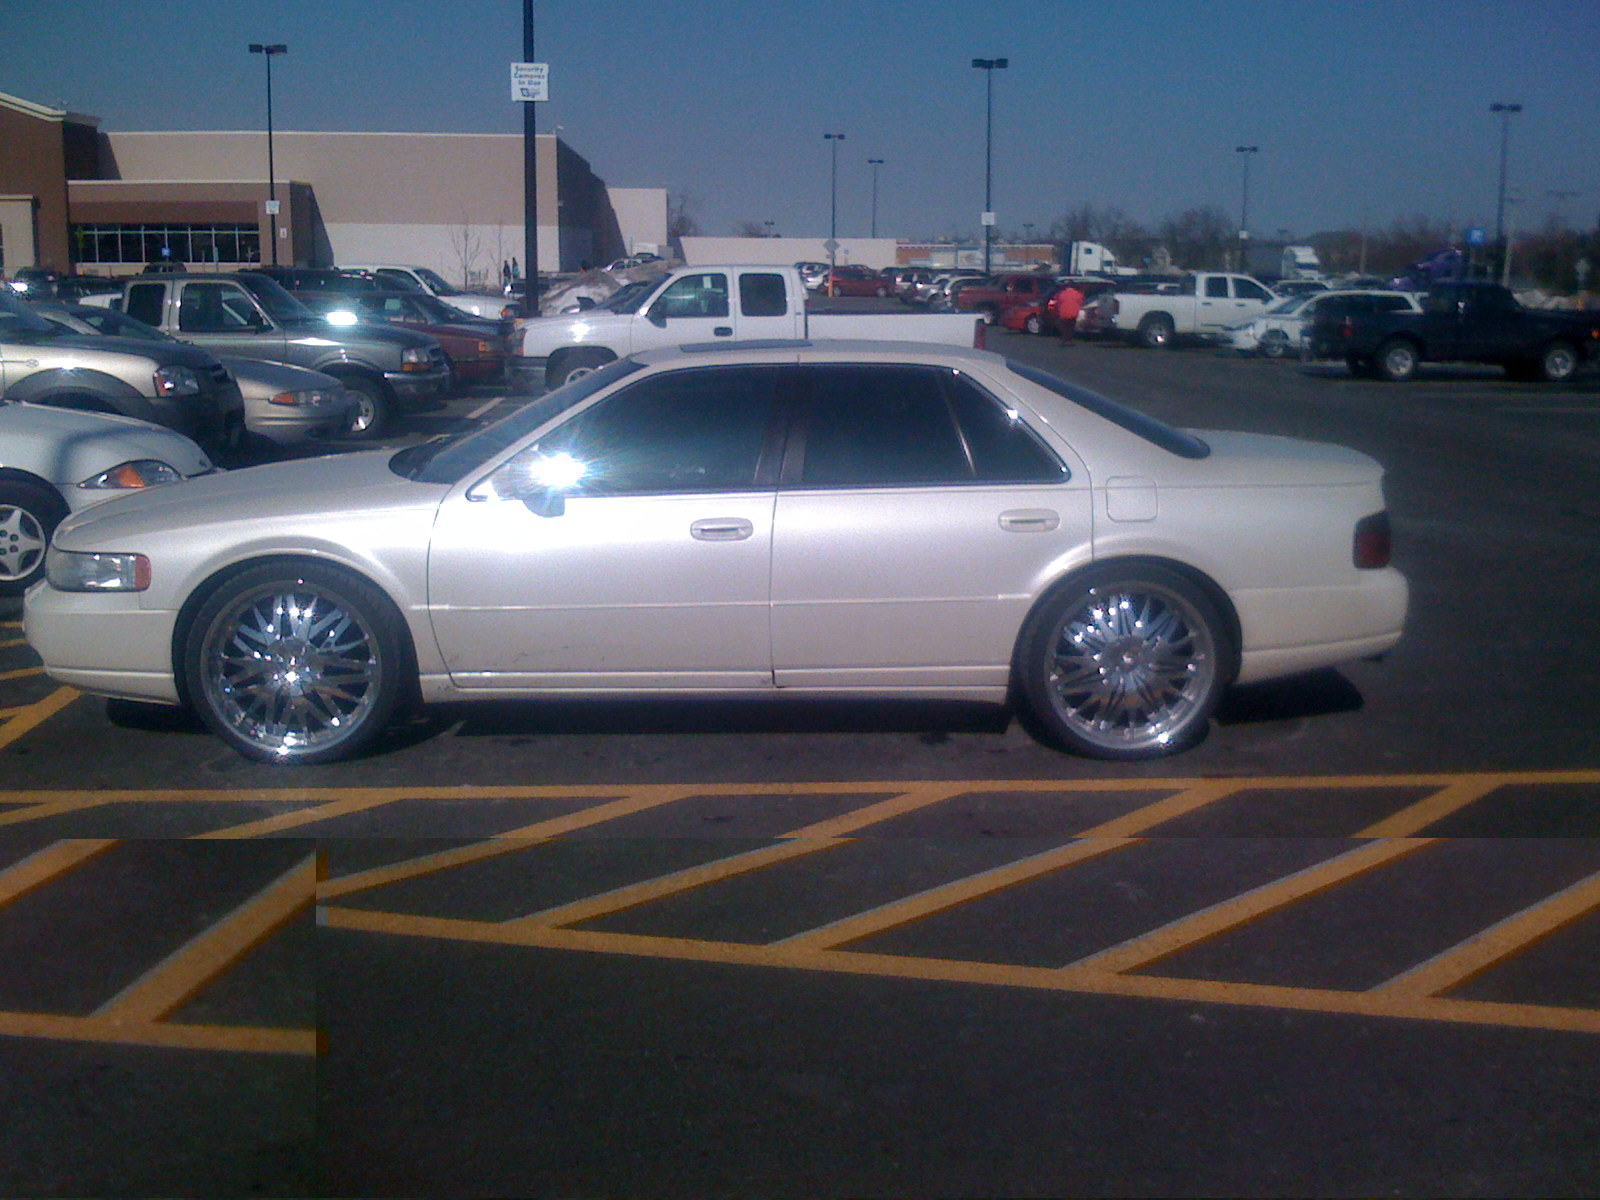 mrmoemqn 39 s 2000 cadillac seville in springfield mo. Cars Review. Best American Auto & Cars Review